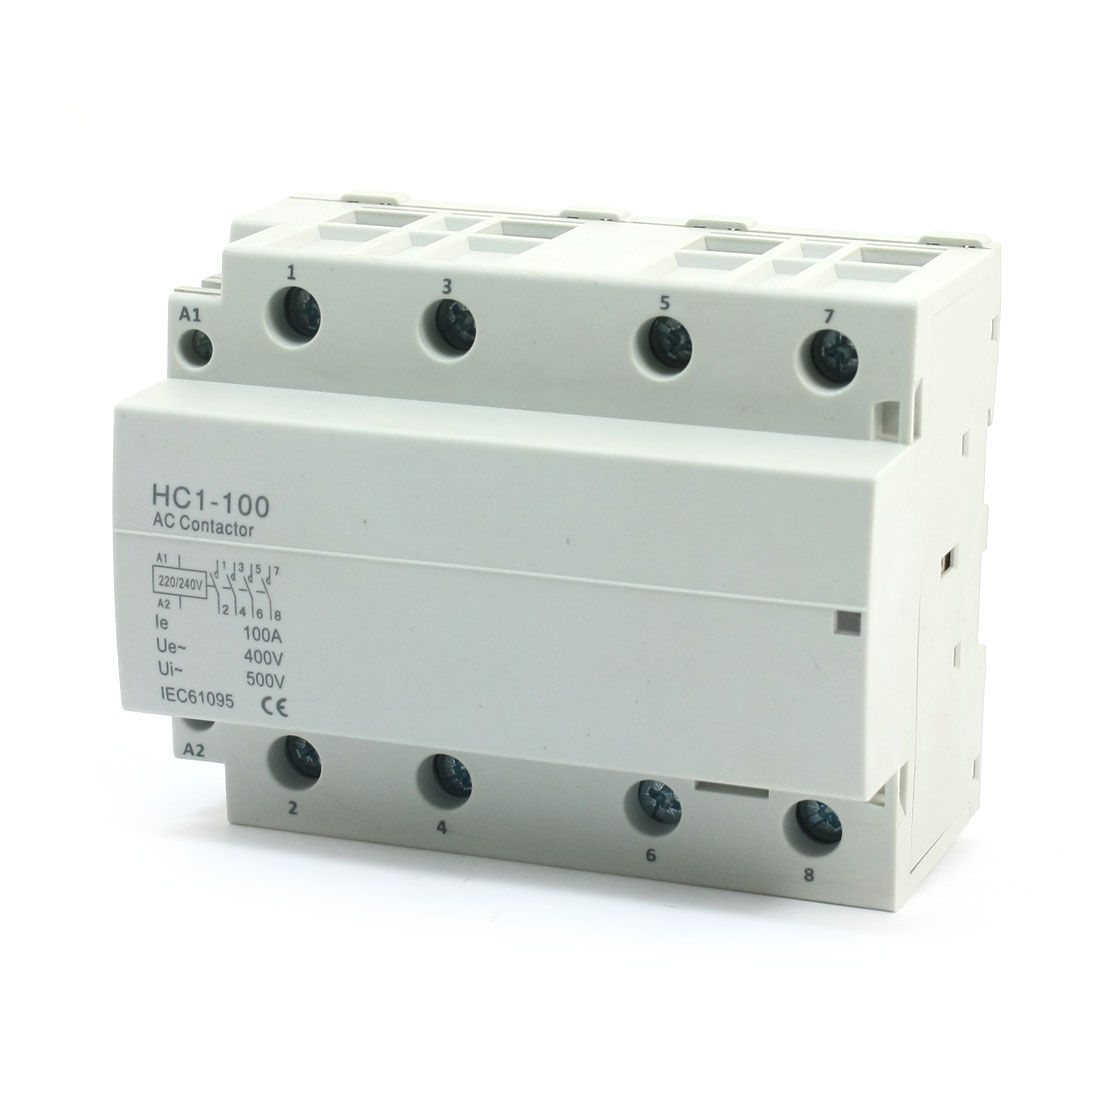 35mm DIN Rail Mount AC400V 100A 4Pole Household Modular AC Contactor